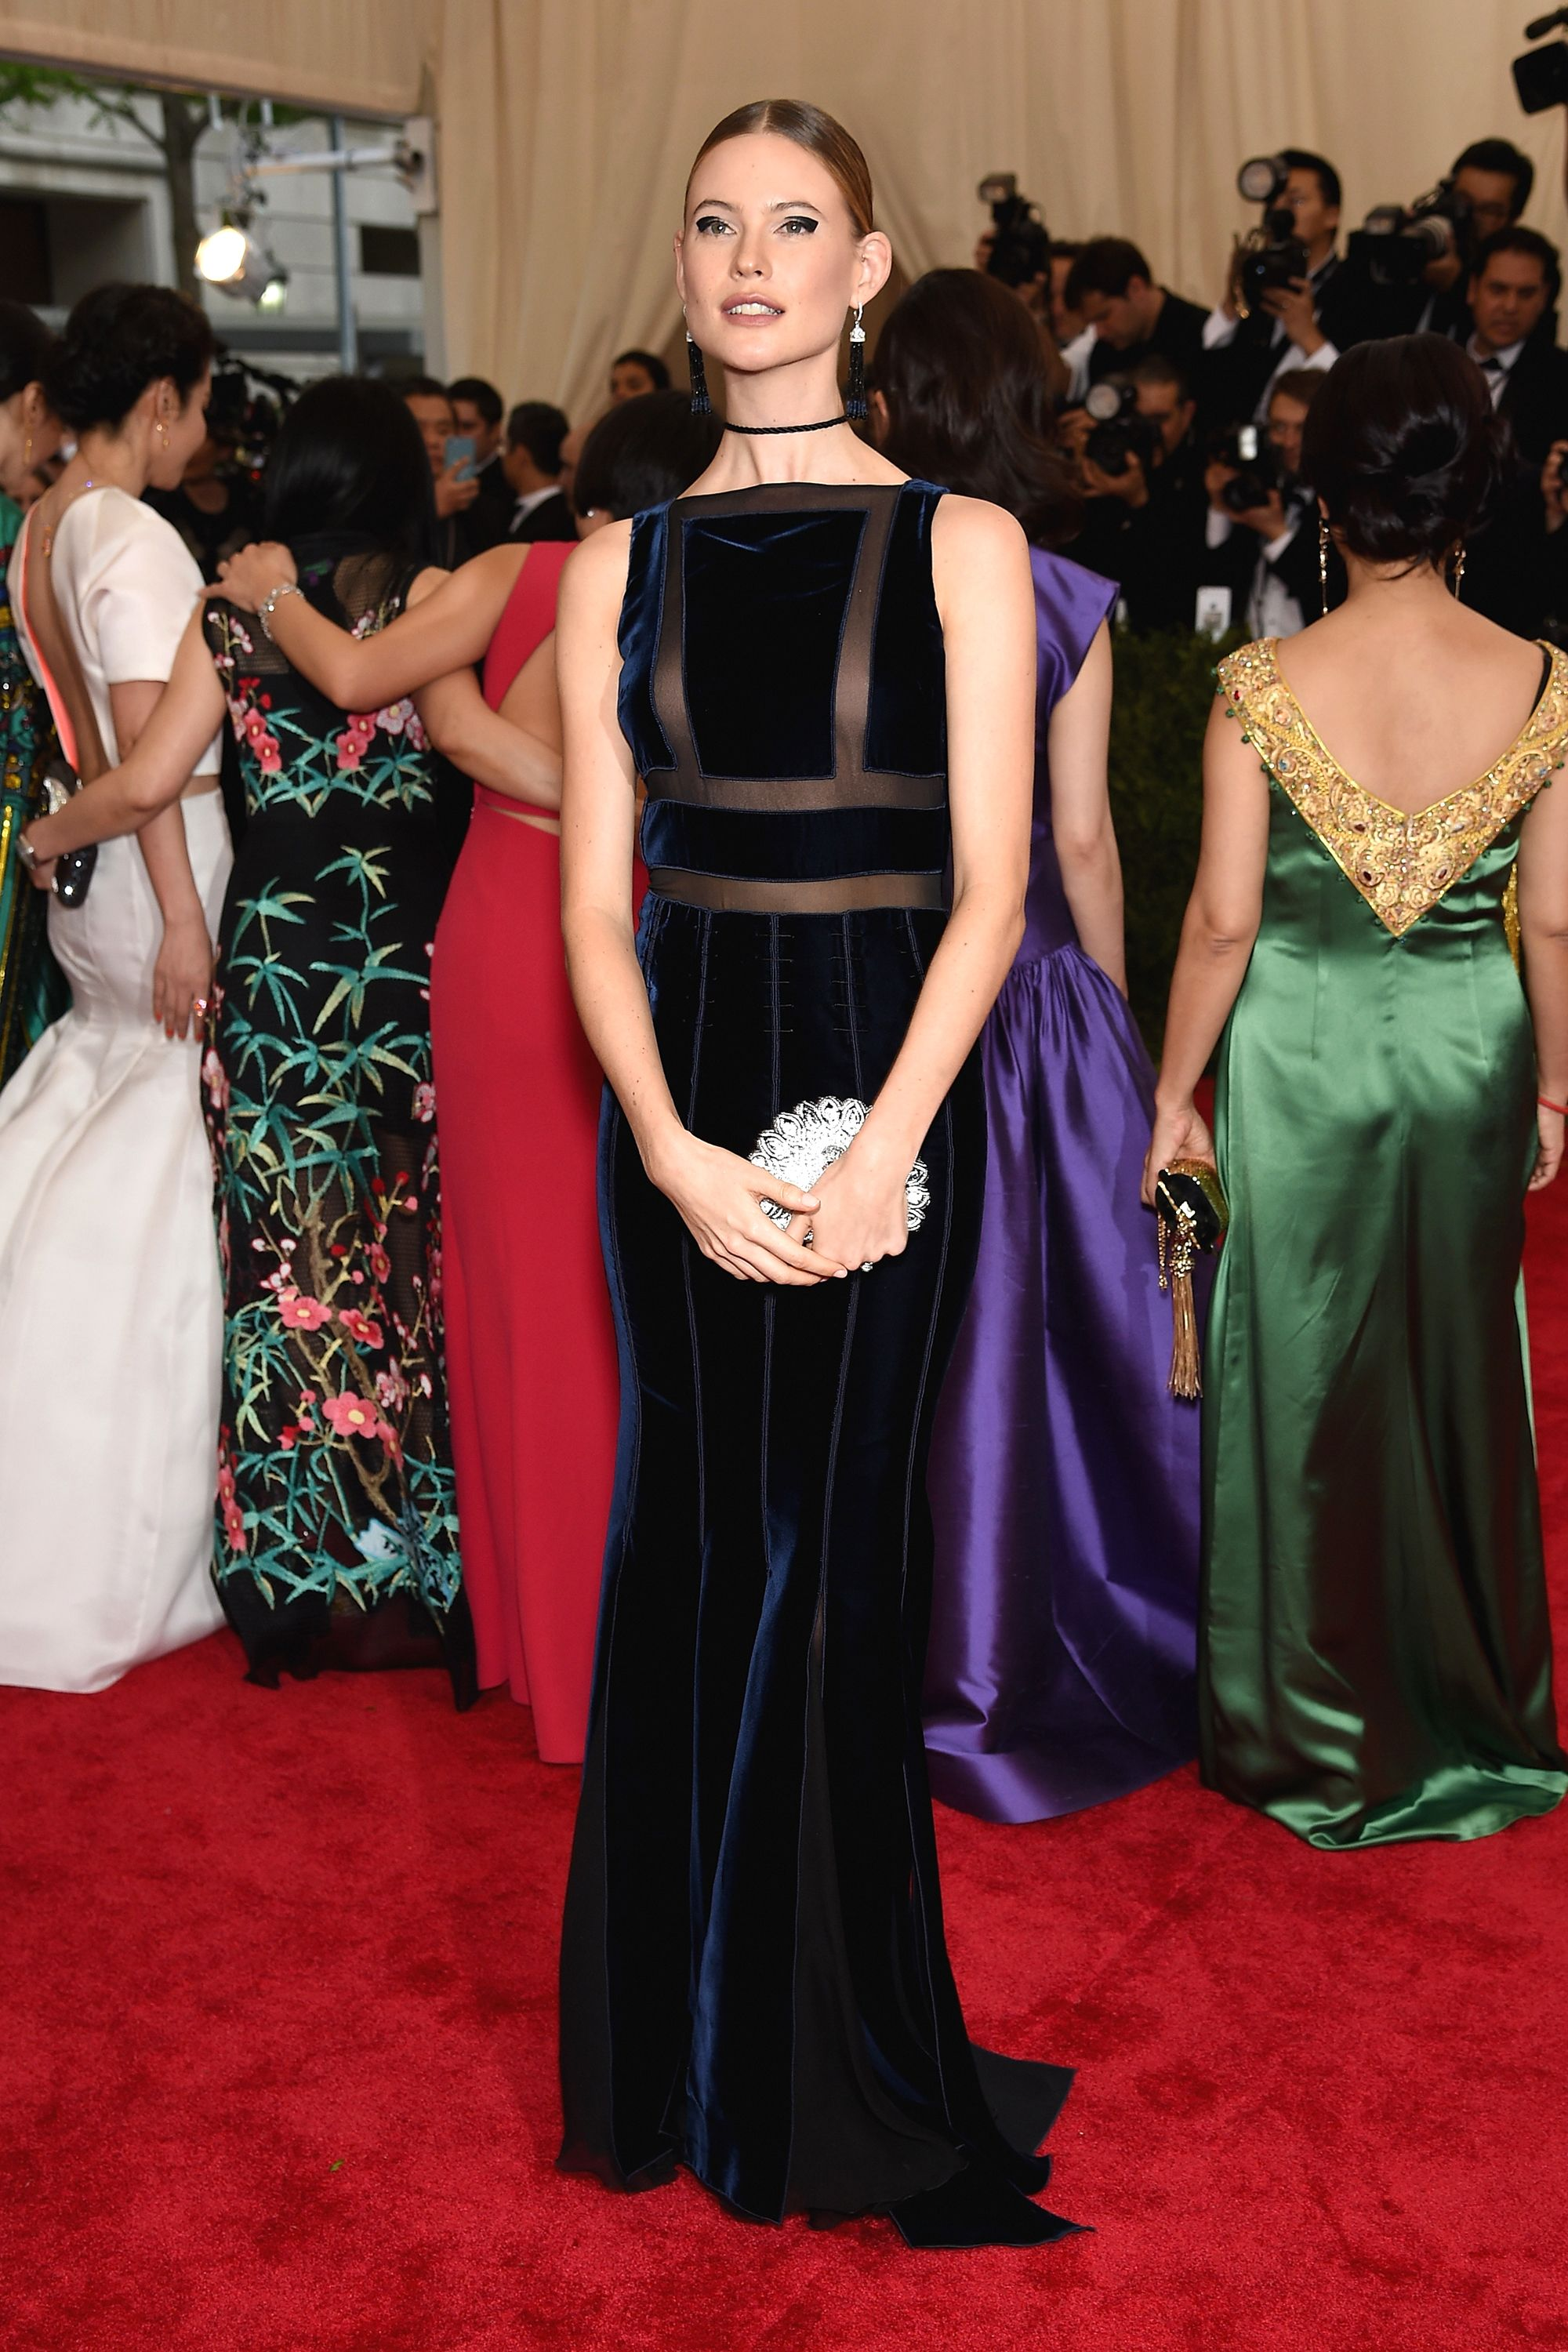 The Best Looks from the 2015 Met Gala   Tommy hilfiger, Behati ...